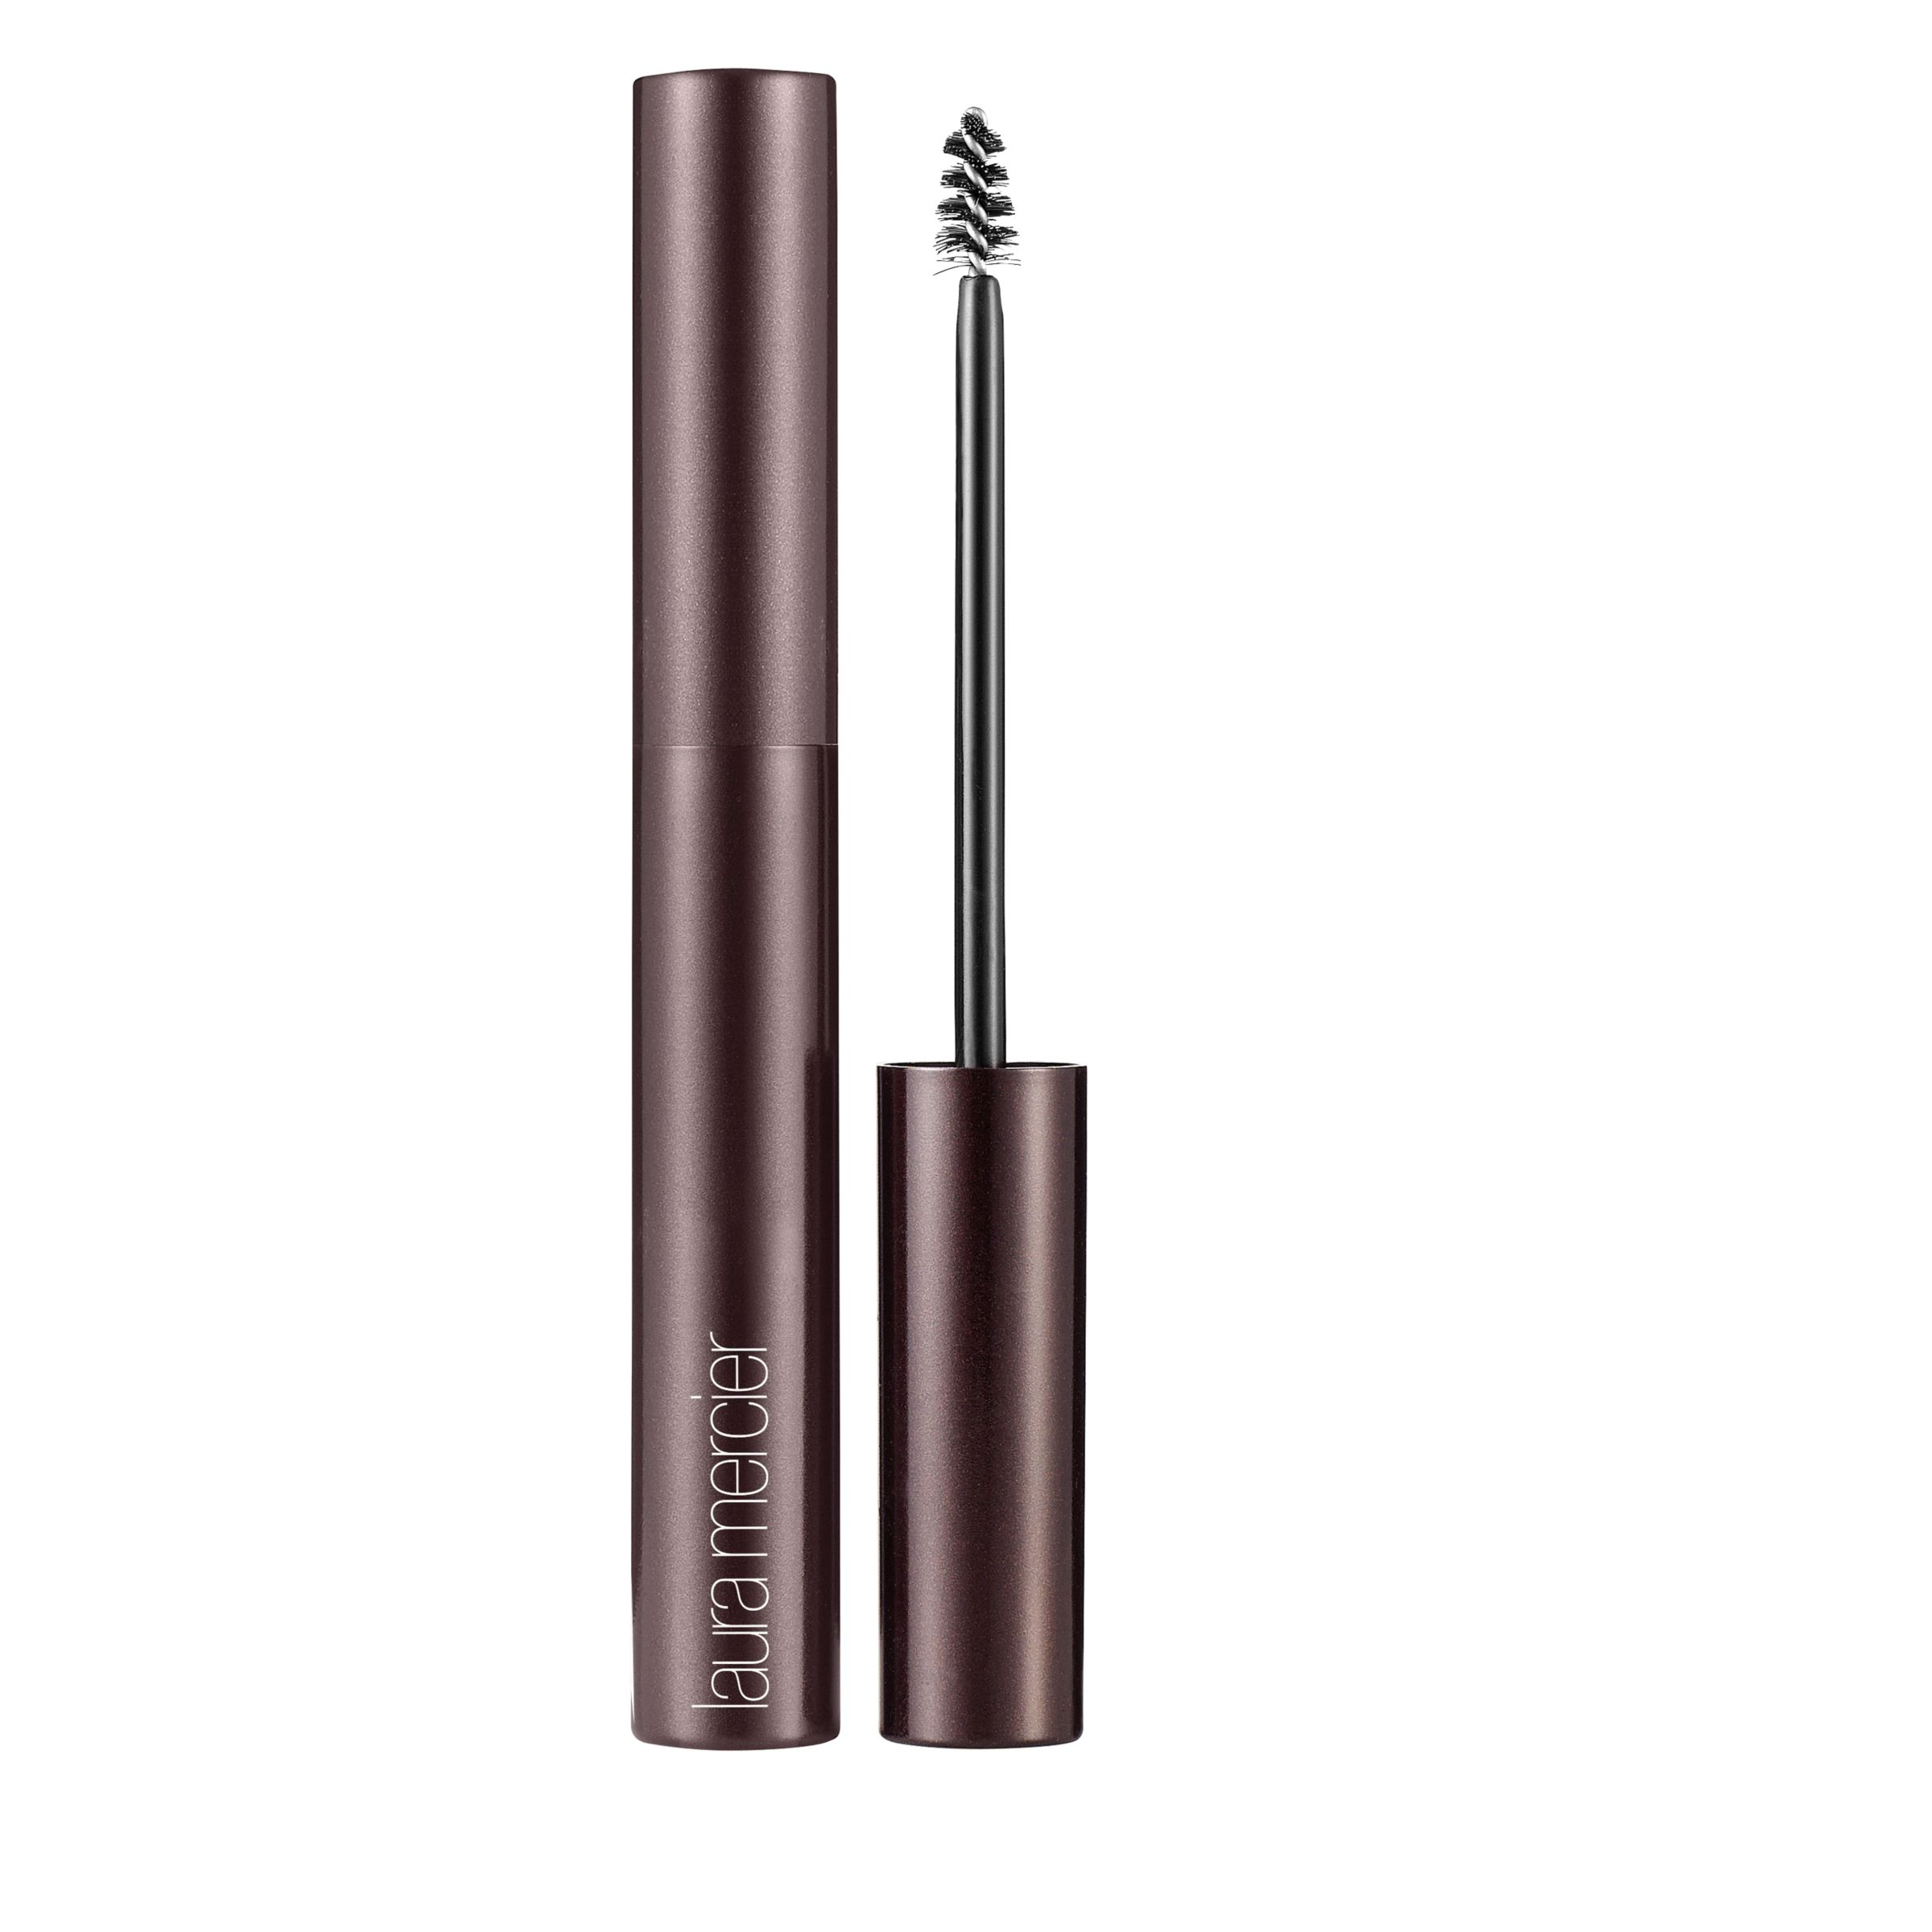 Laura Mercier Laura Mercier Brow Dimension Fibre Infused Colour Gel